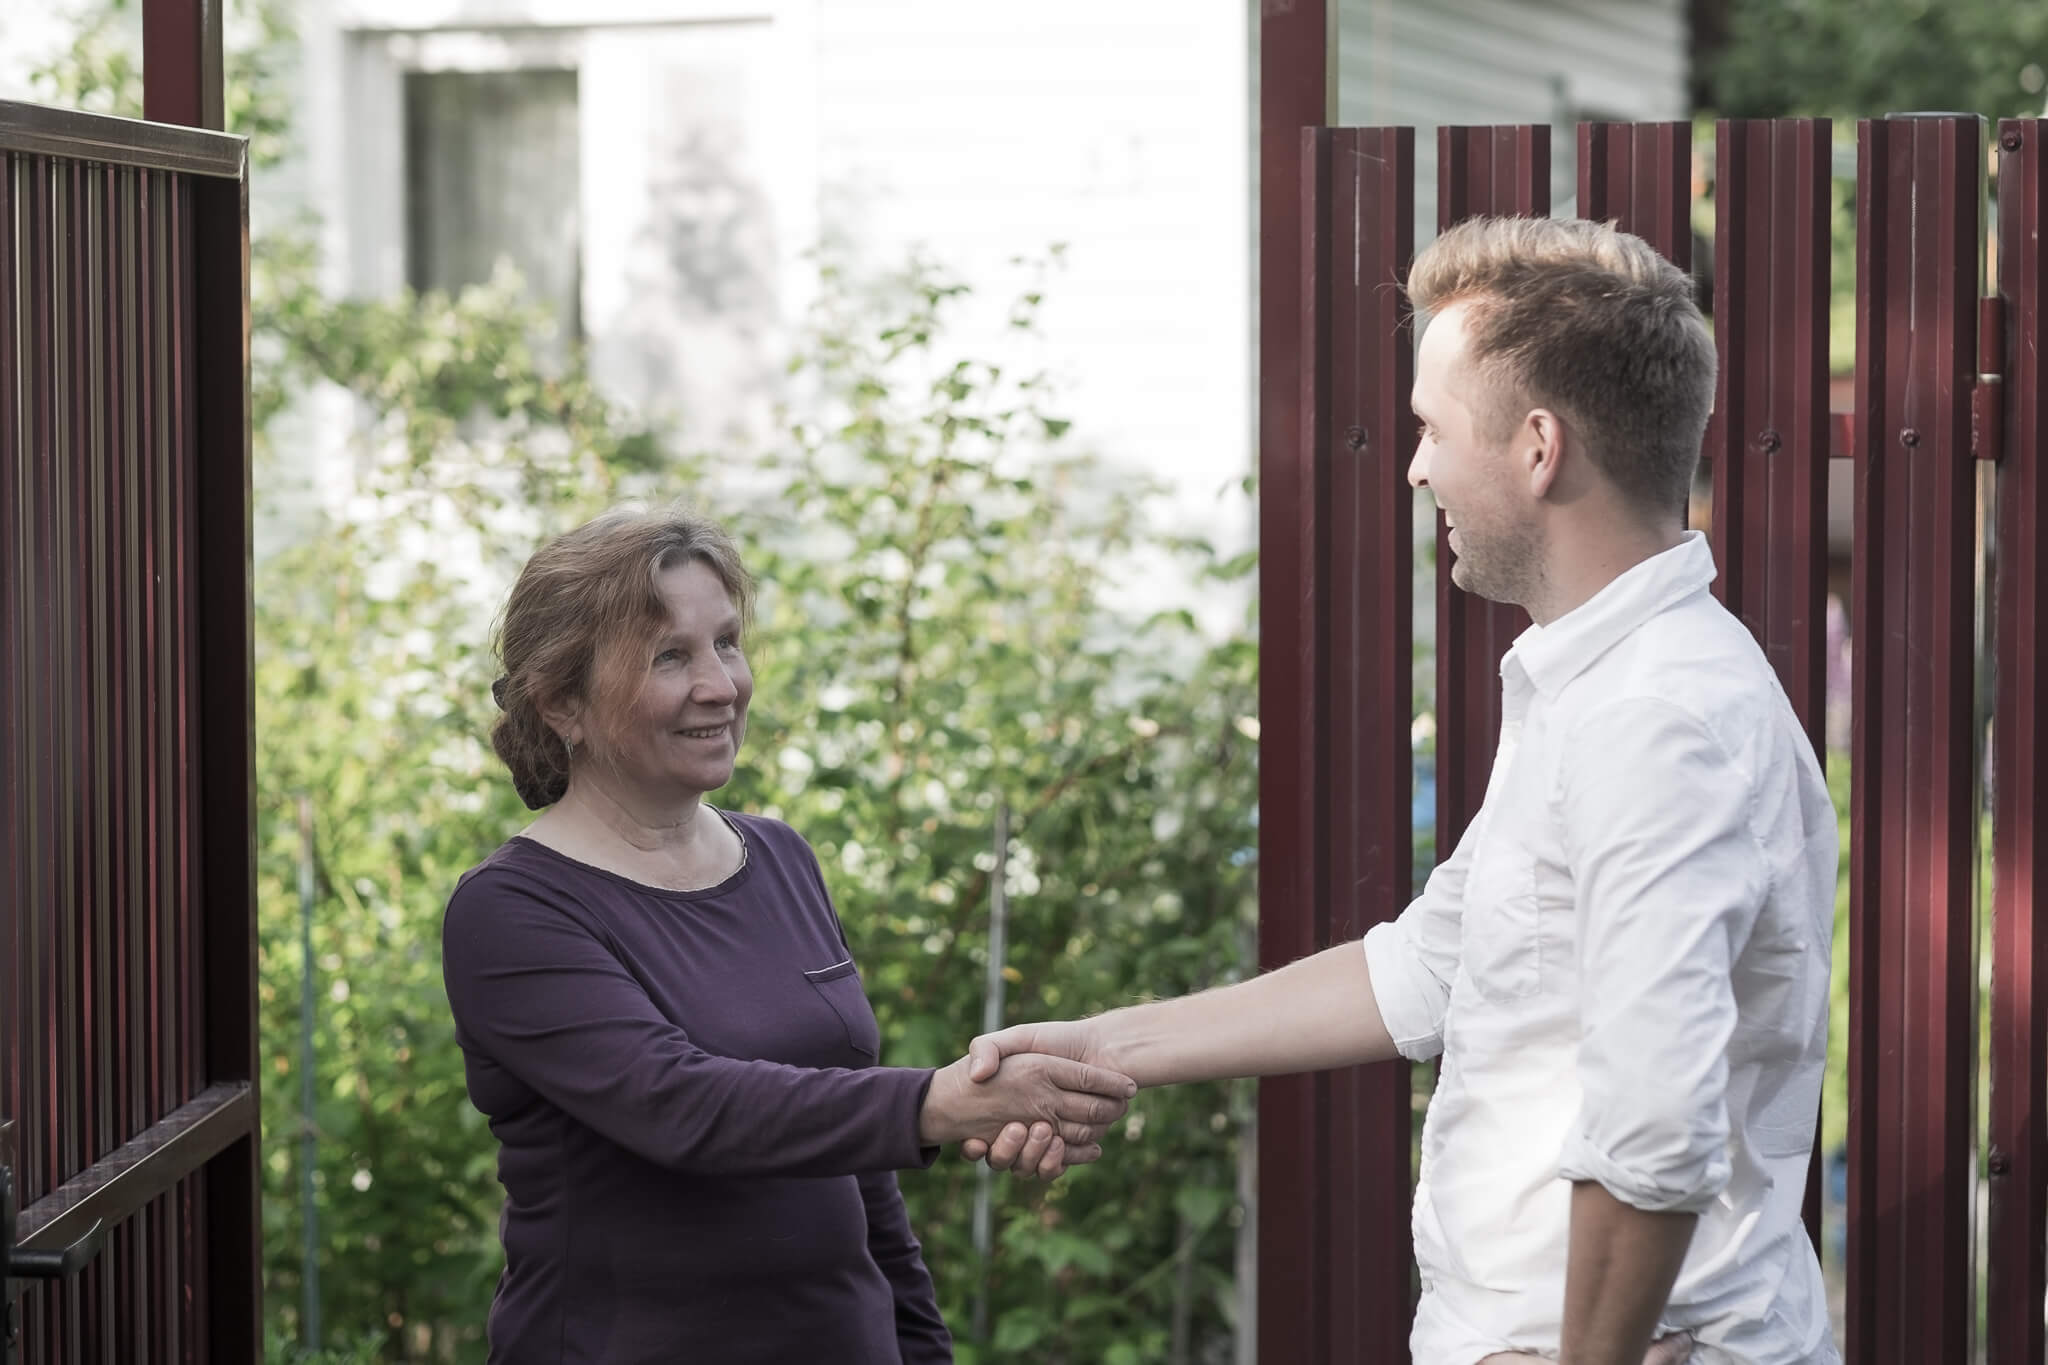 Two people greeting each other outside Derventio supported housing